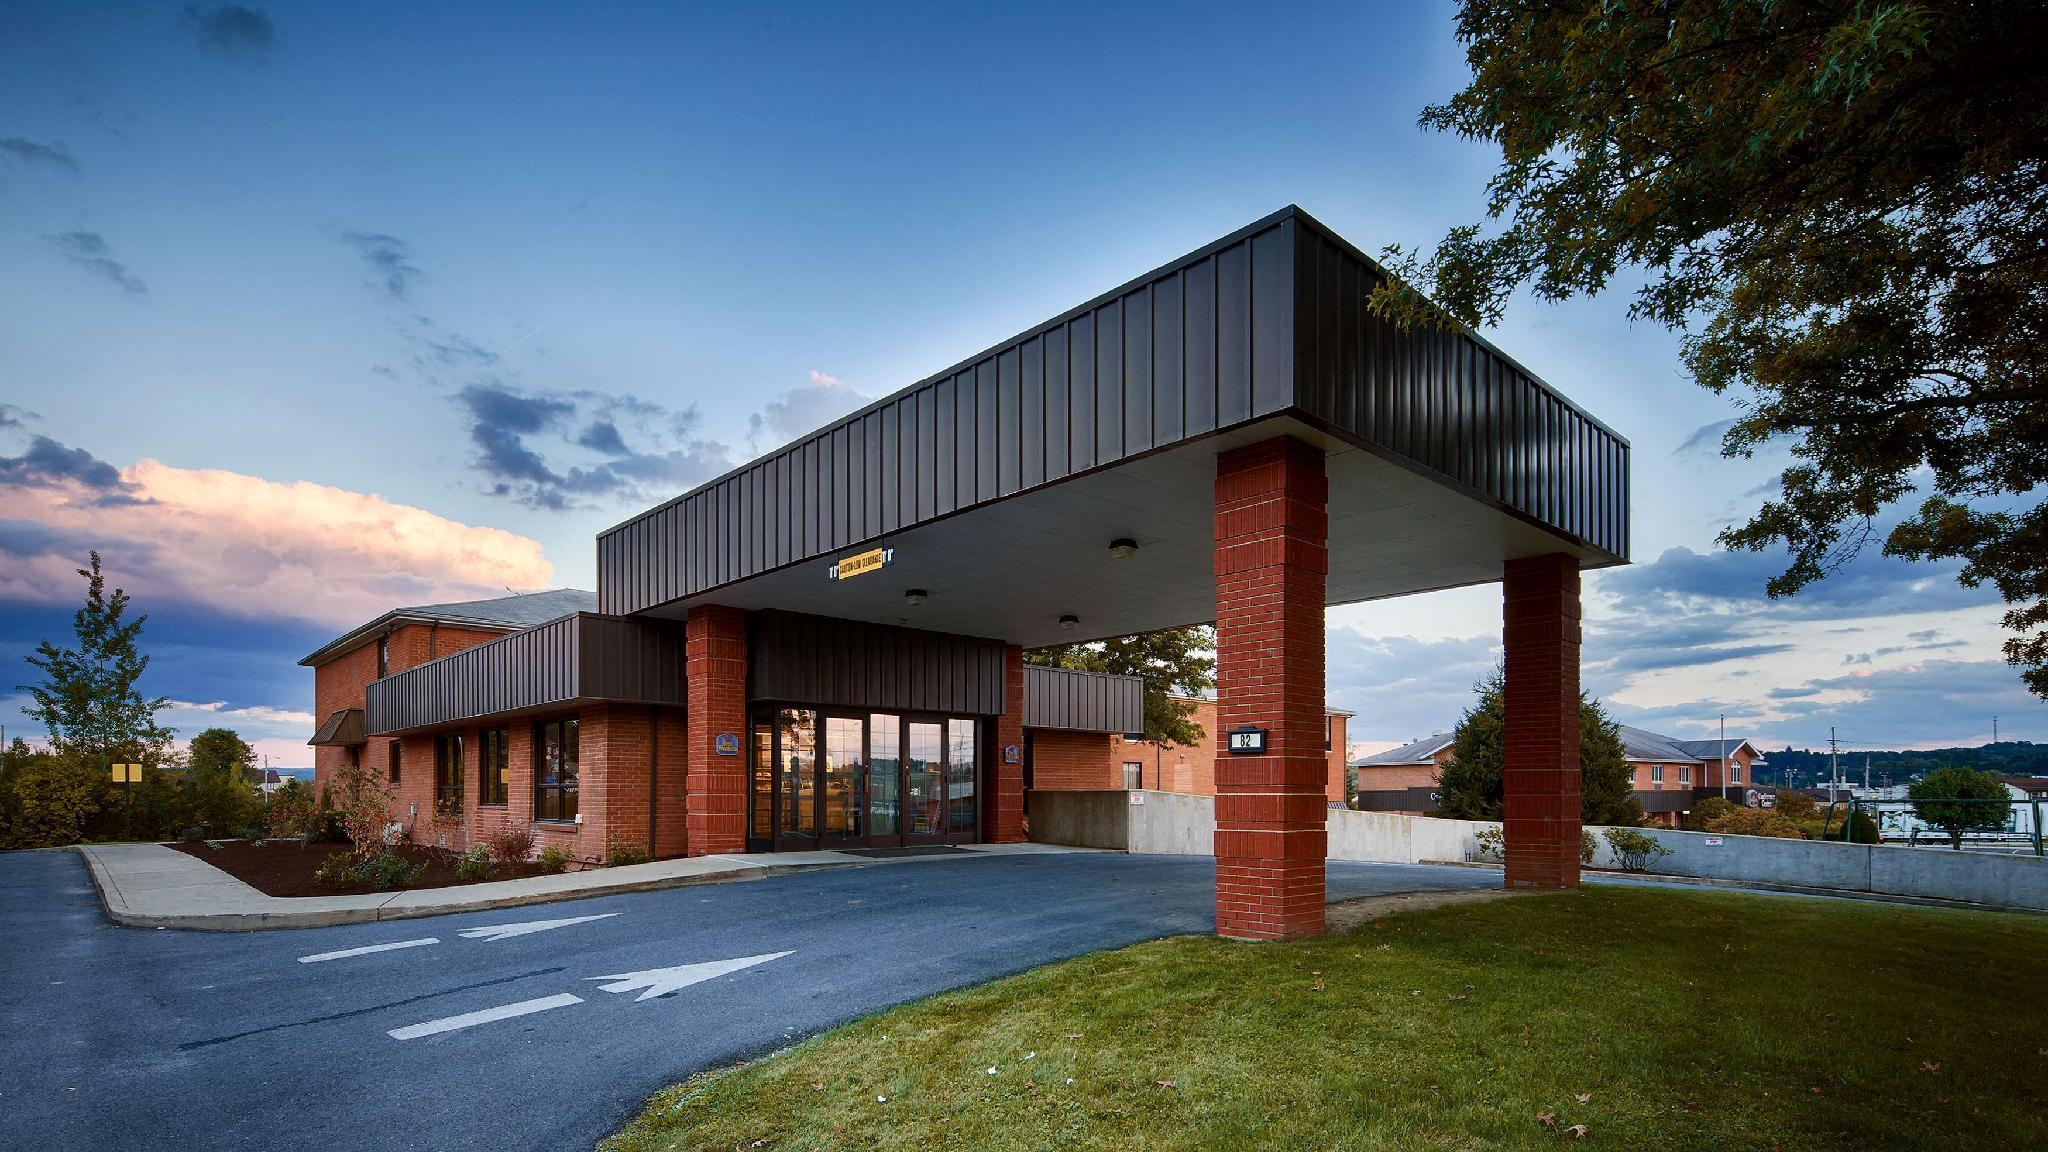 Best Western Inn And Conference Center